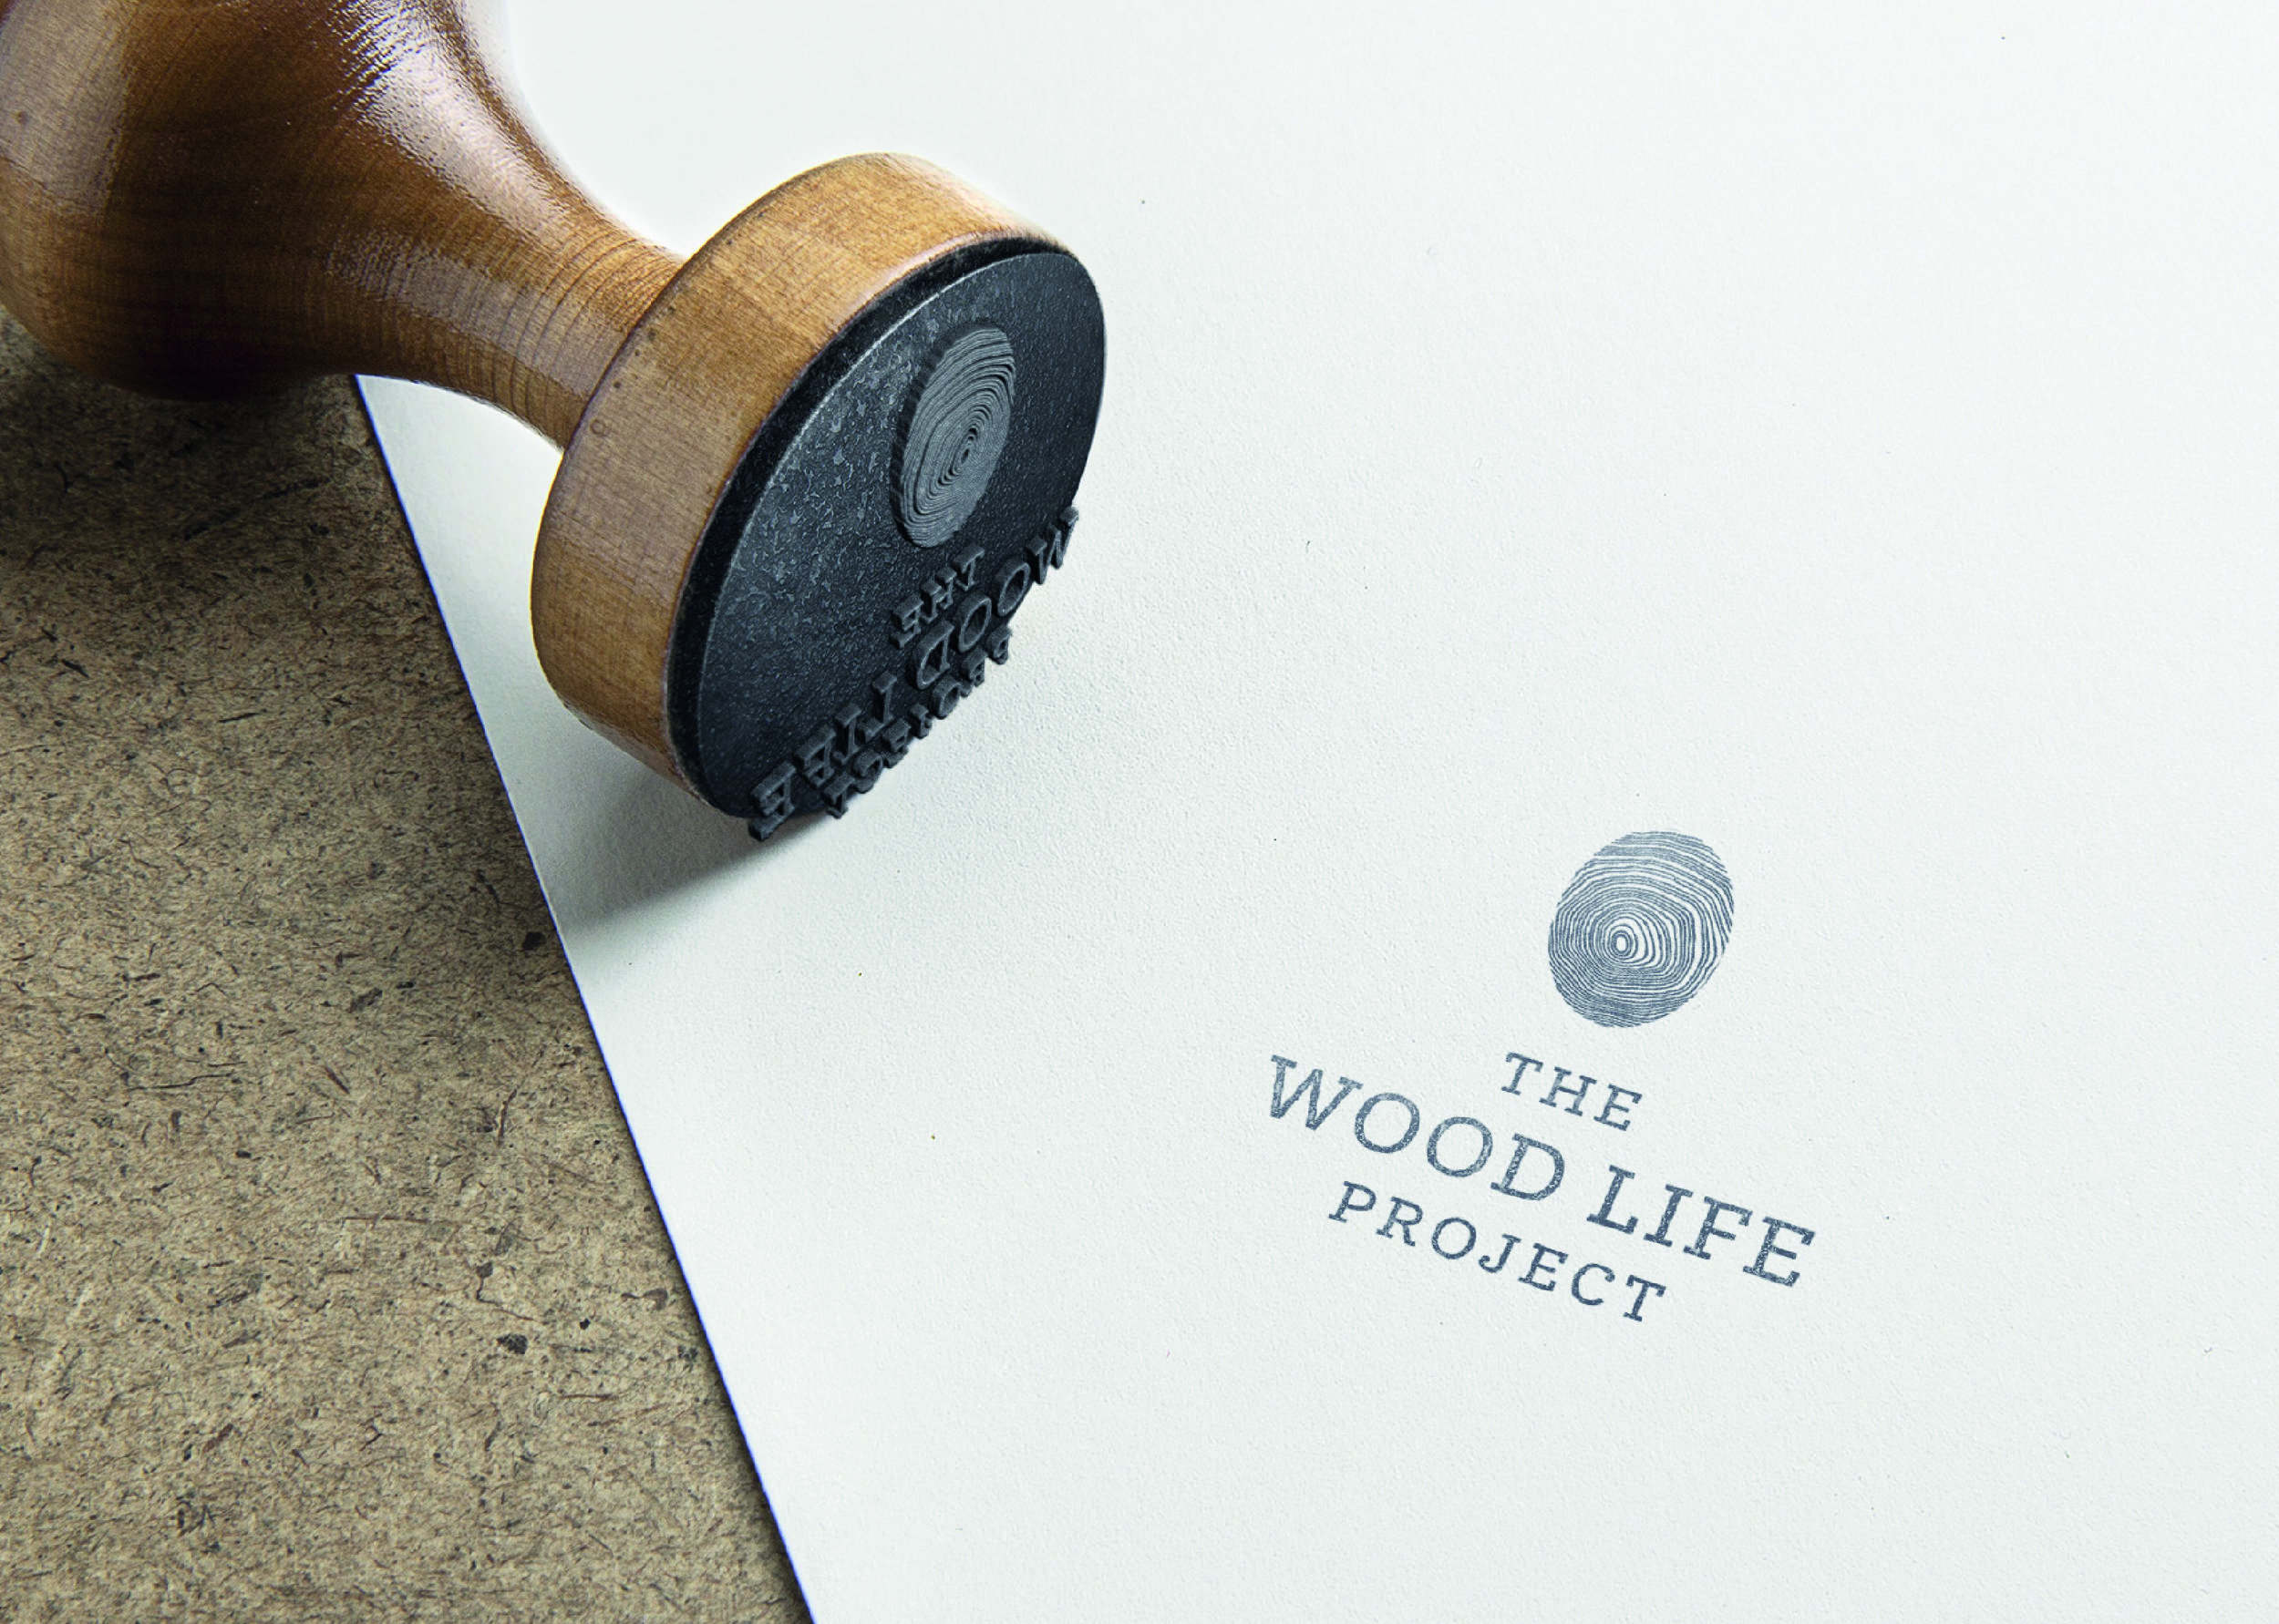 The wood life project instagram-14.jpg